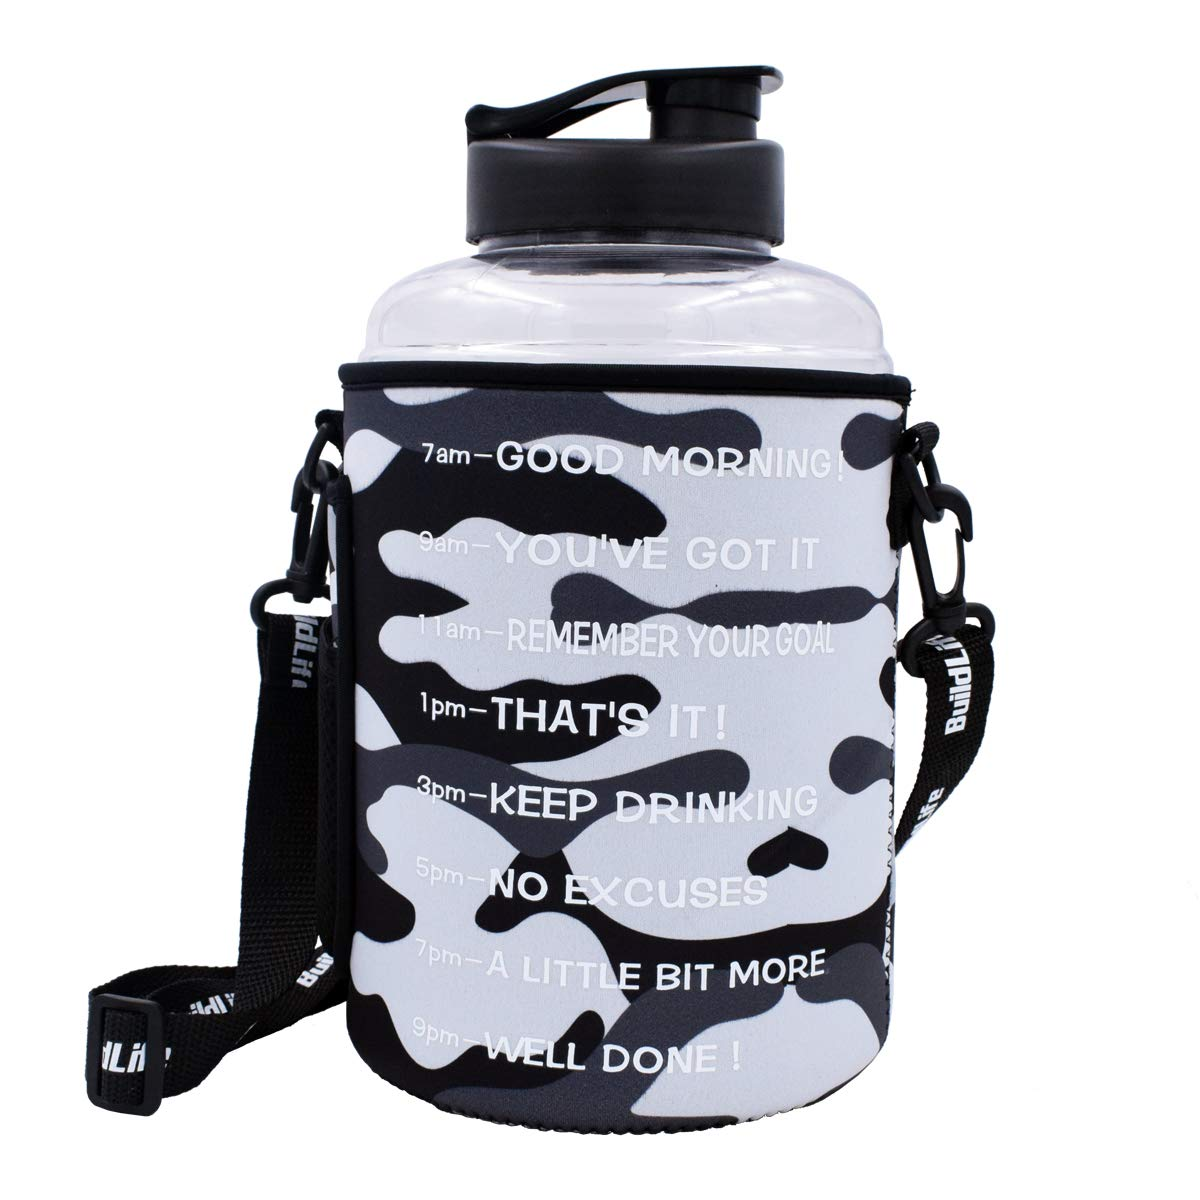 BuildLife 1 Gallon(128OZ) Sports Water Bottle Inspirational Fitness Workout Wide Mouth with Time Marker and Sleeve for Measuring Your H2O Intake BPA Free (1 Gallon, 1 Gallon-Clear with Sleeve)